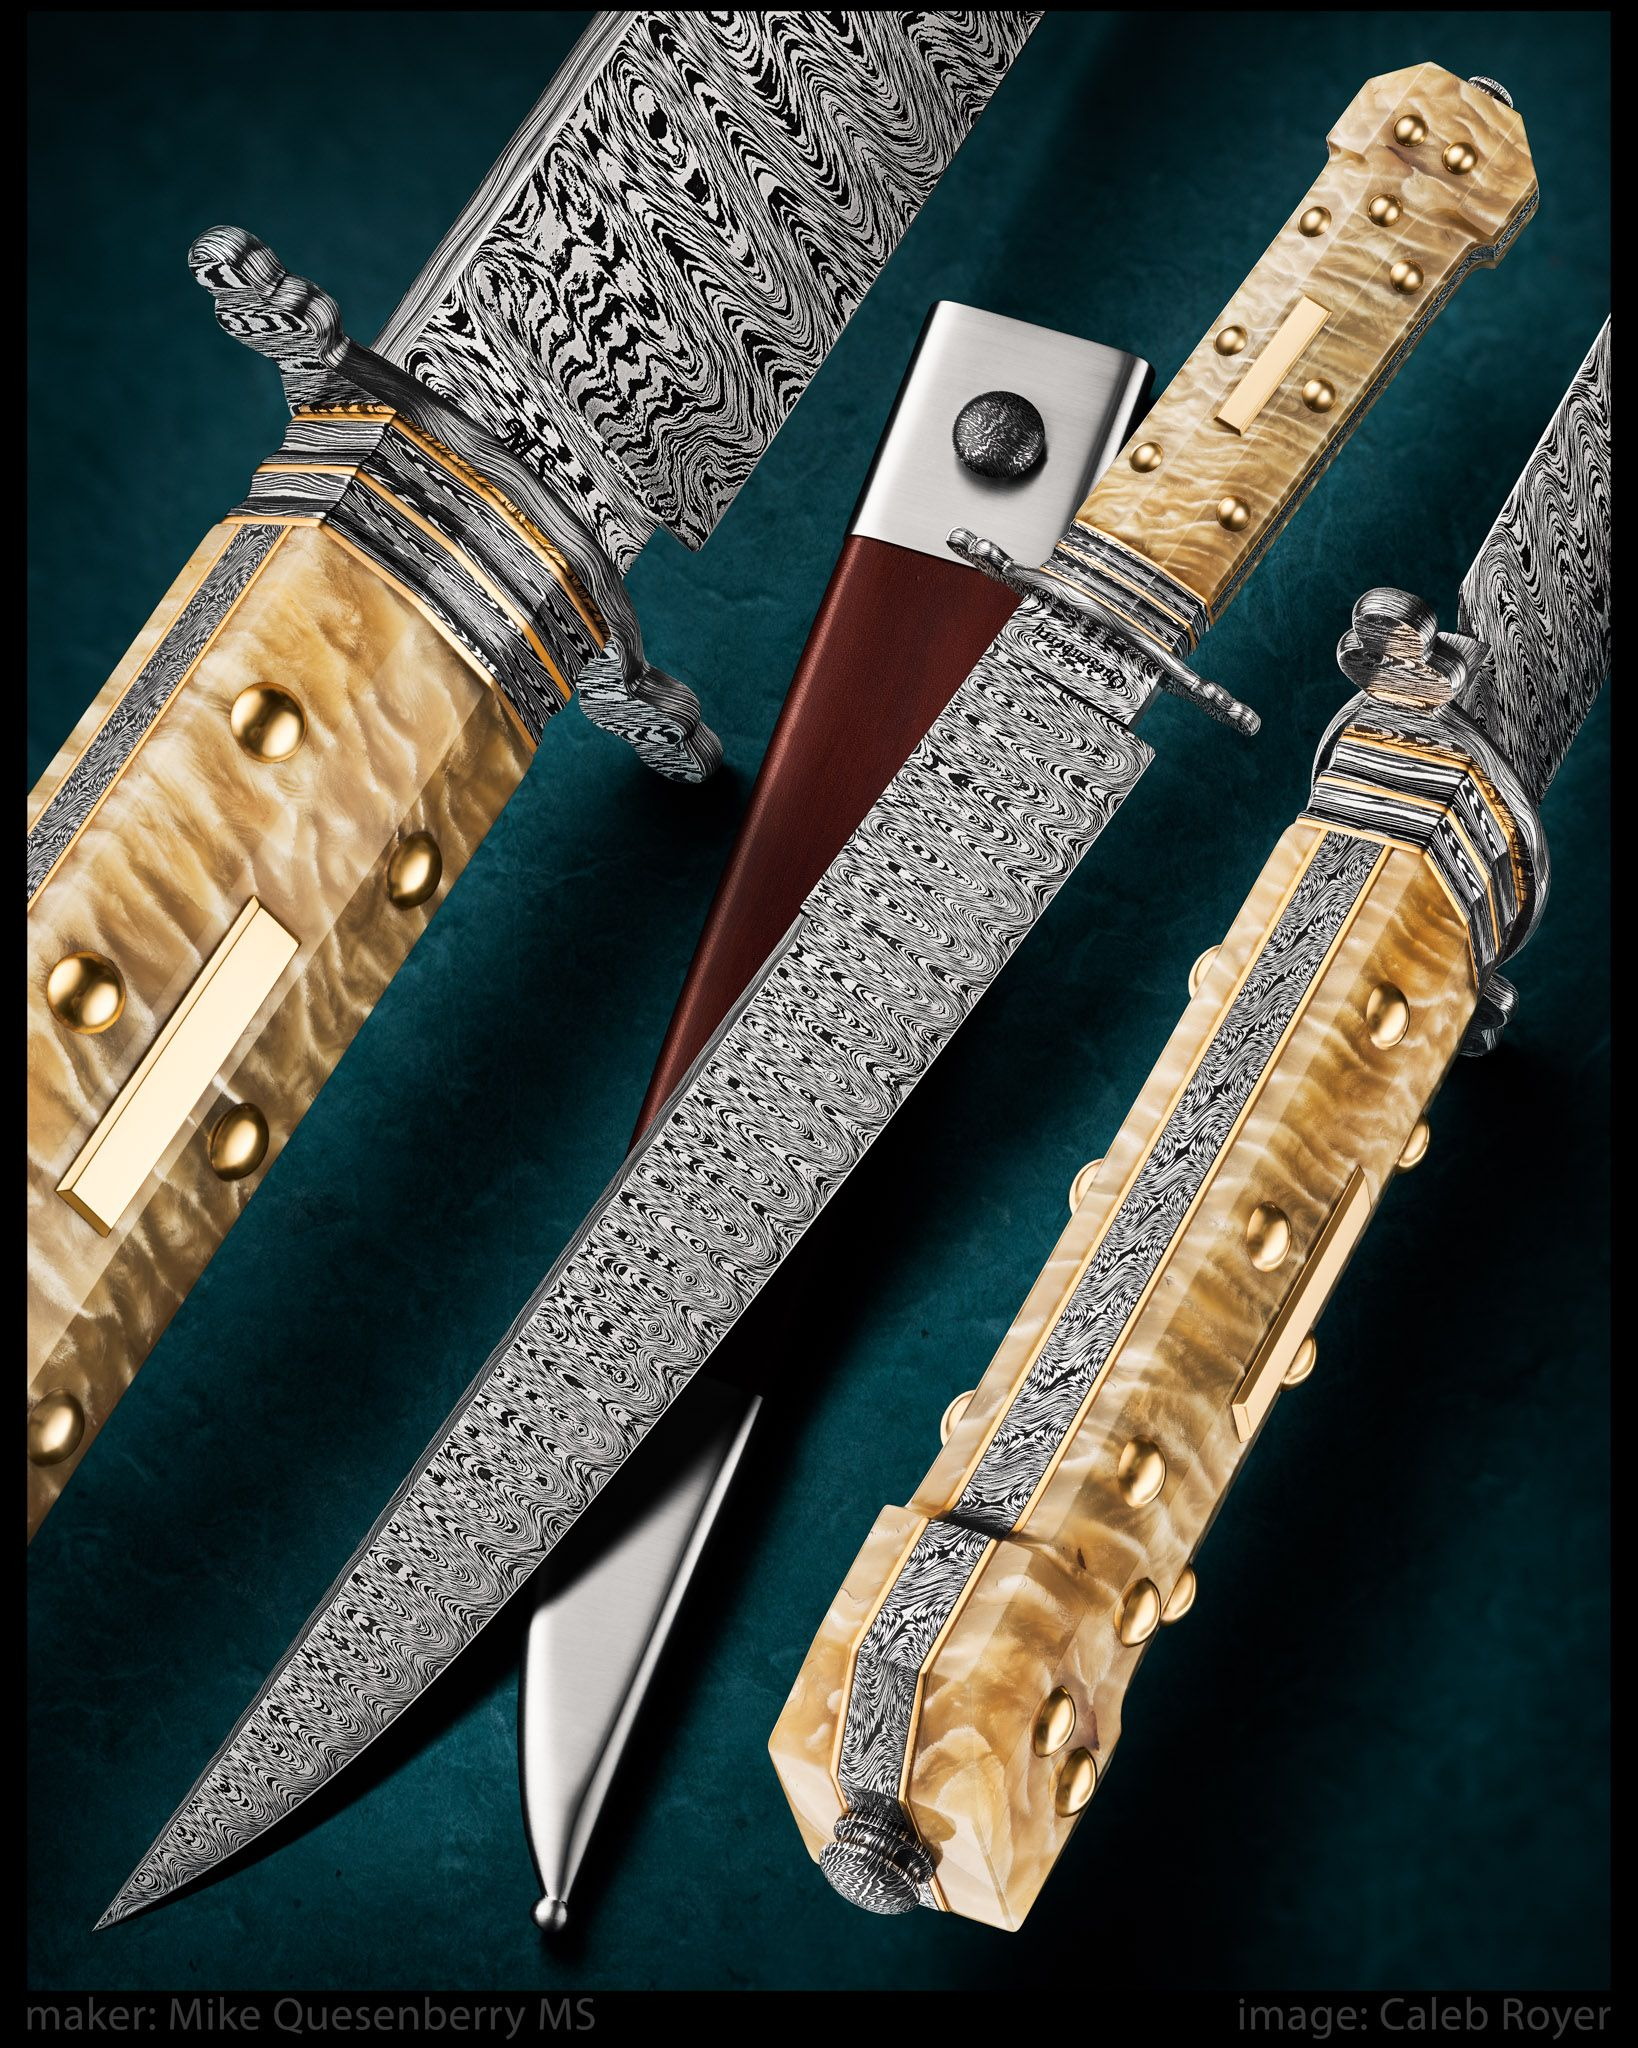 Dogbone Bowie By Mike Quesenberry Ms Website Quesenberryknives Com Ladder Patterned W S Of 1080 And 15n20 5 Piece Spacer From Gold Bowie Knife Knife Bowie